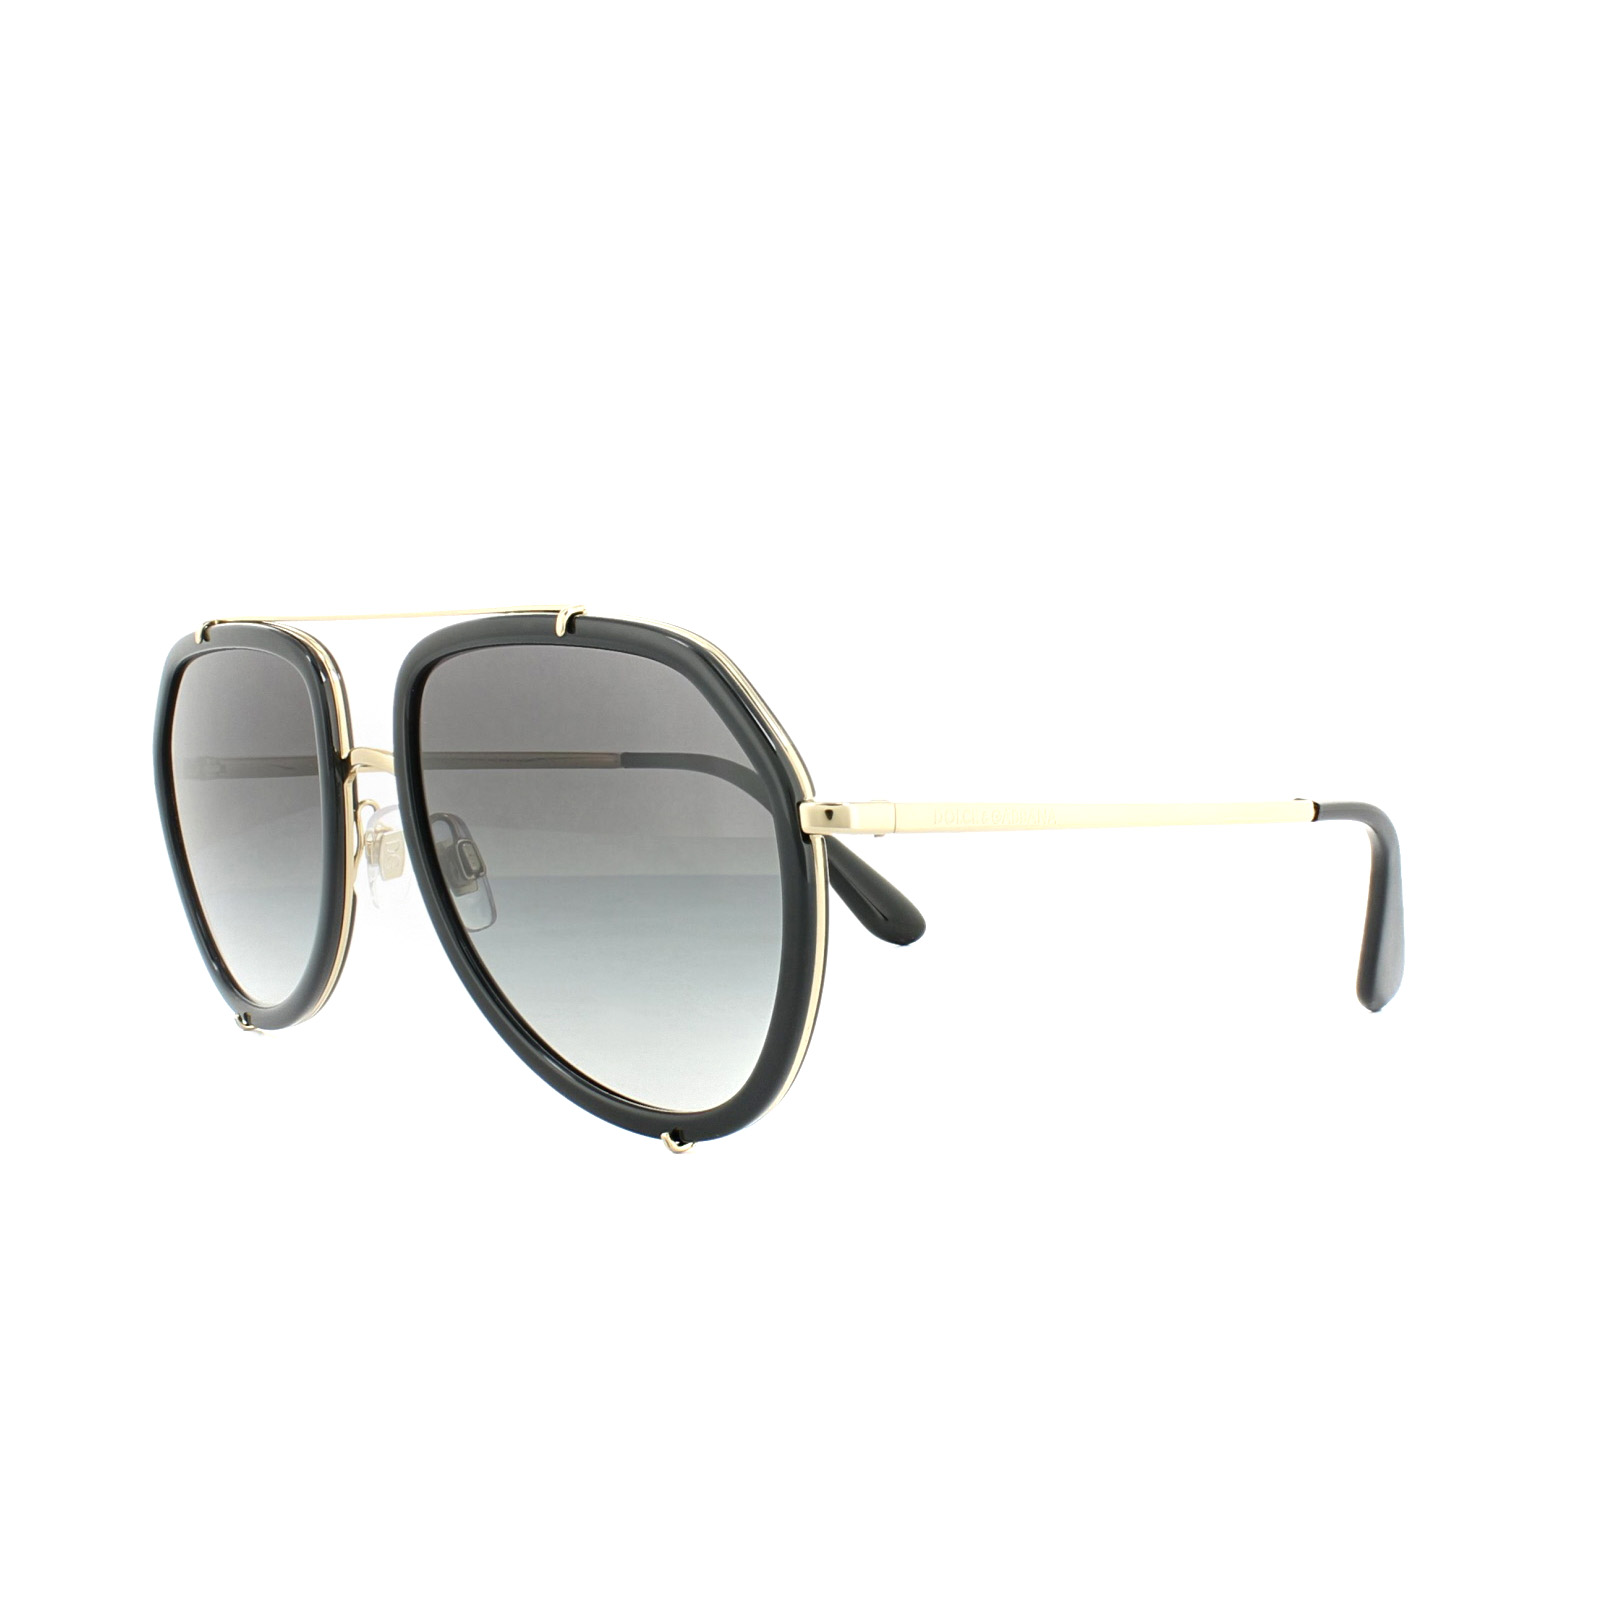 Sentinel Dolce and Gabbana Sunglasses 2161 02/8G Black Gold Grey Gradient